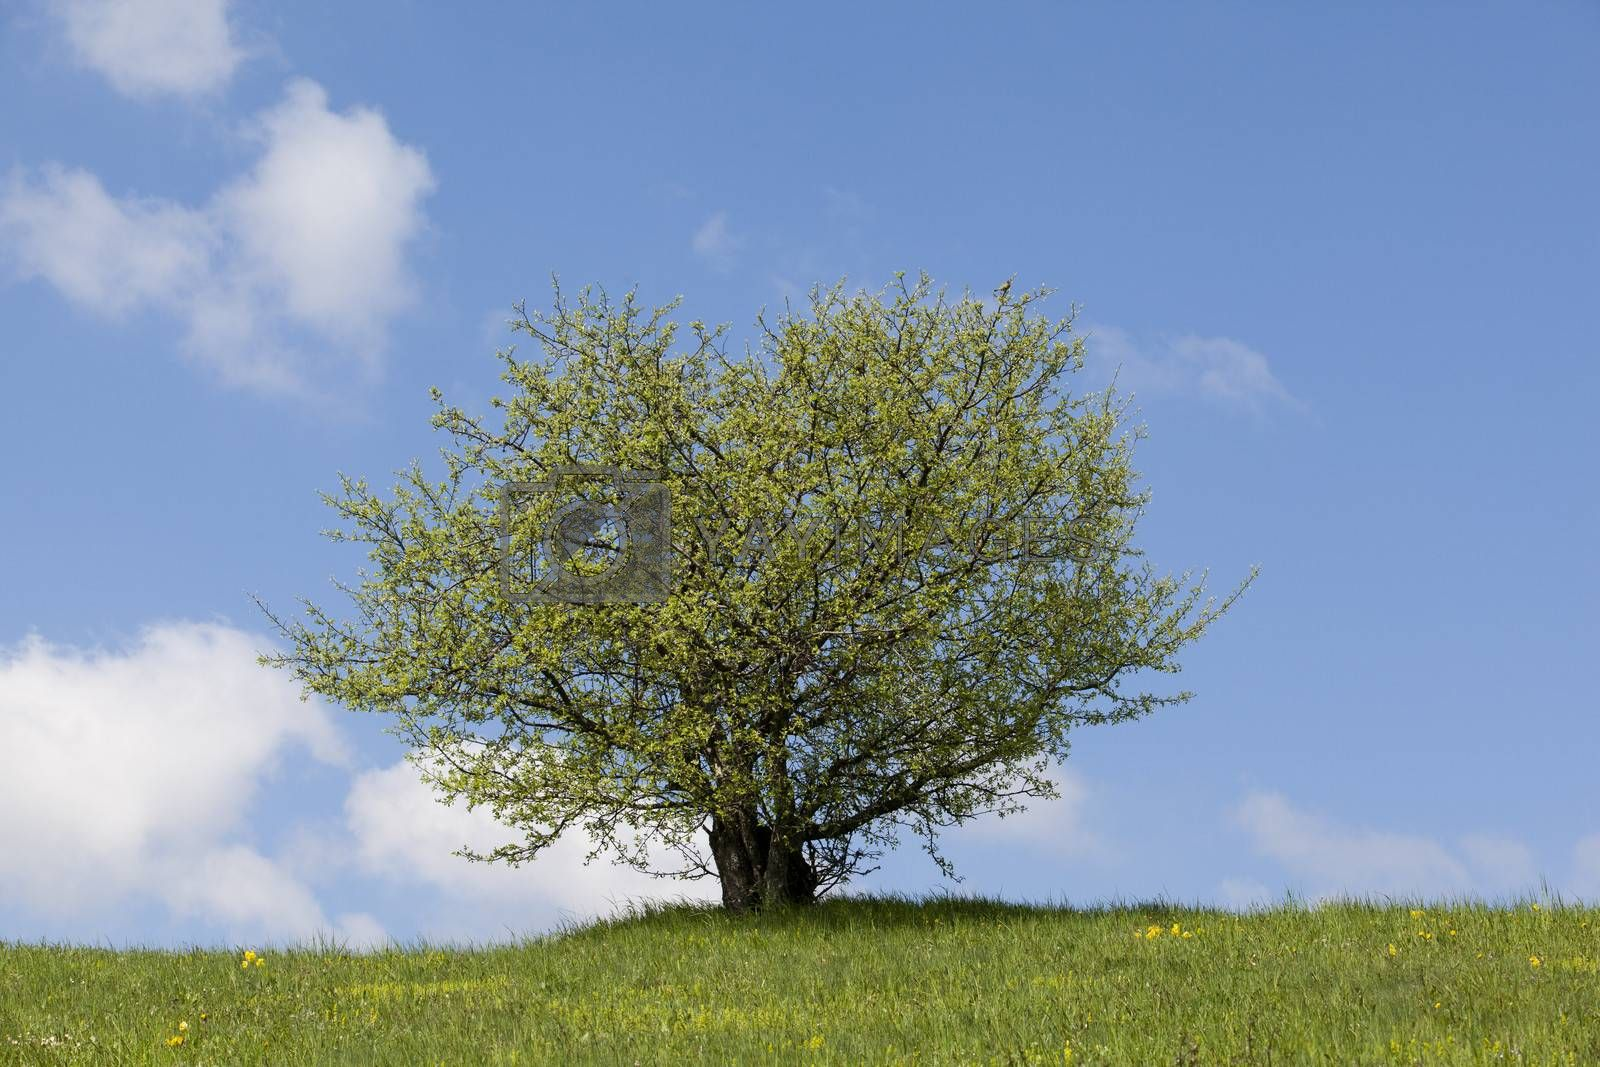 Green field, lonely tree and the blue sky